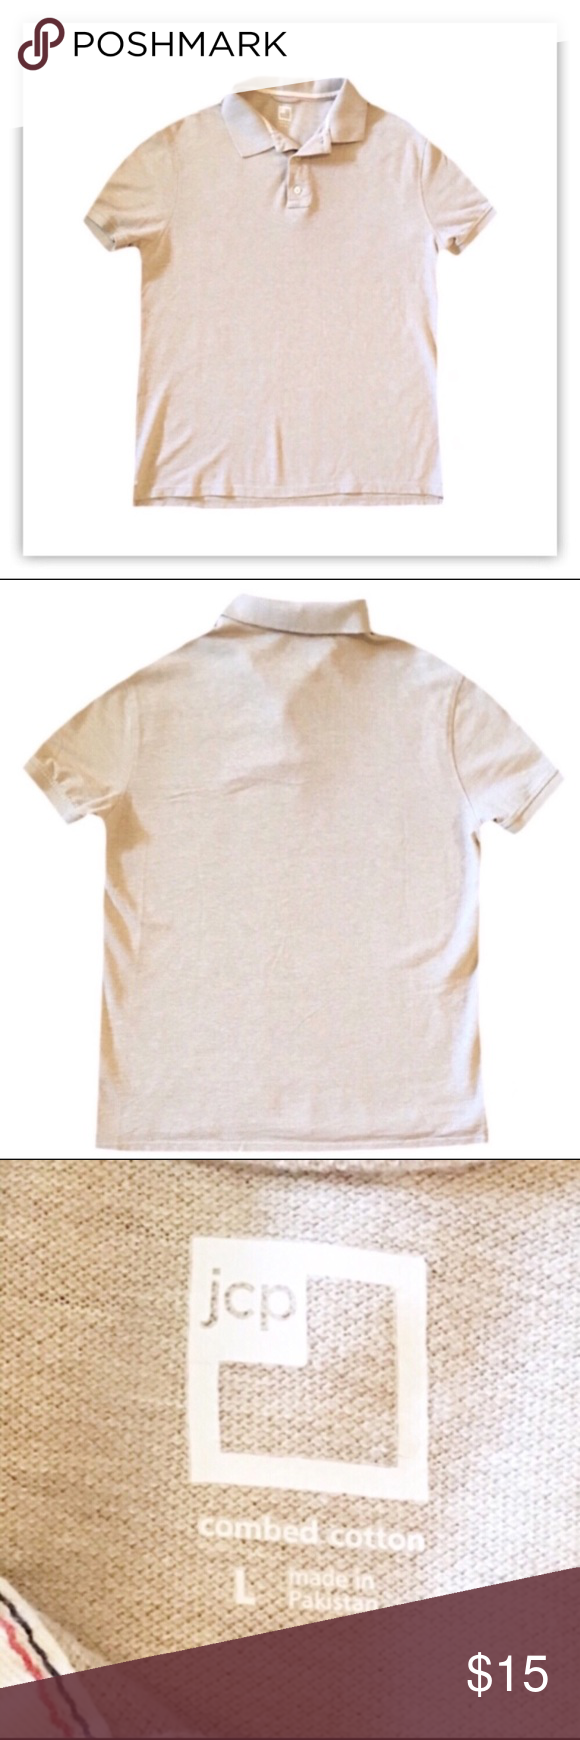 c42a52807f82 JCP Short Sleeve Polo ◾️Gently used JCPenney men s cream short sleeve polo.  ◾️Size Large ◾️Made with 100% Cotton. ◾️Length is 28